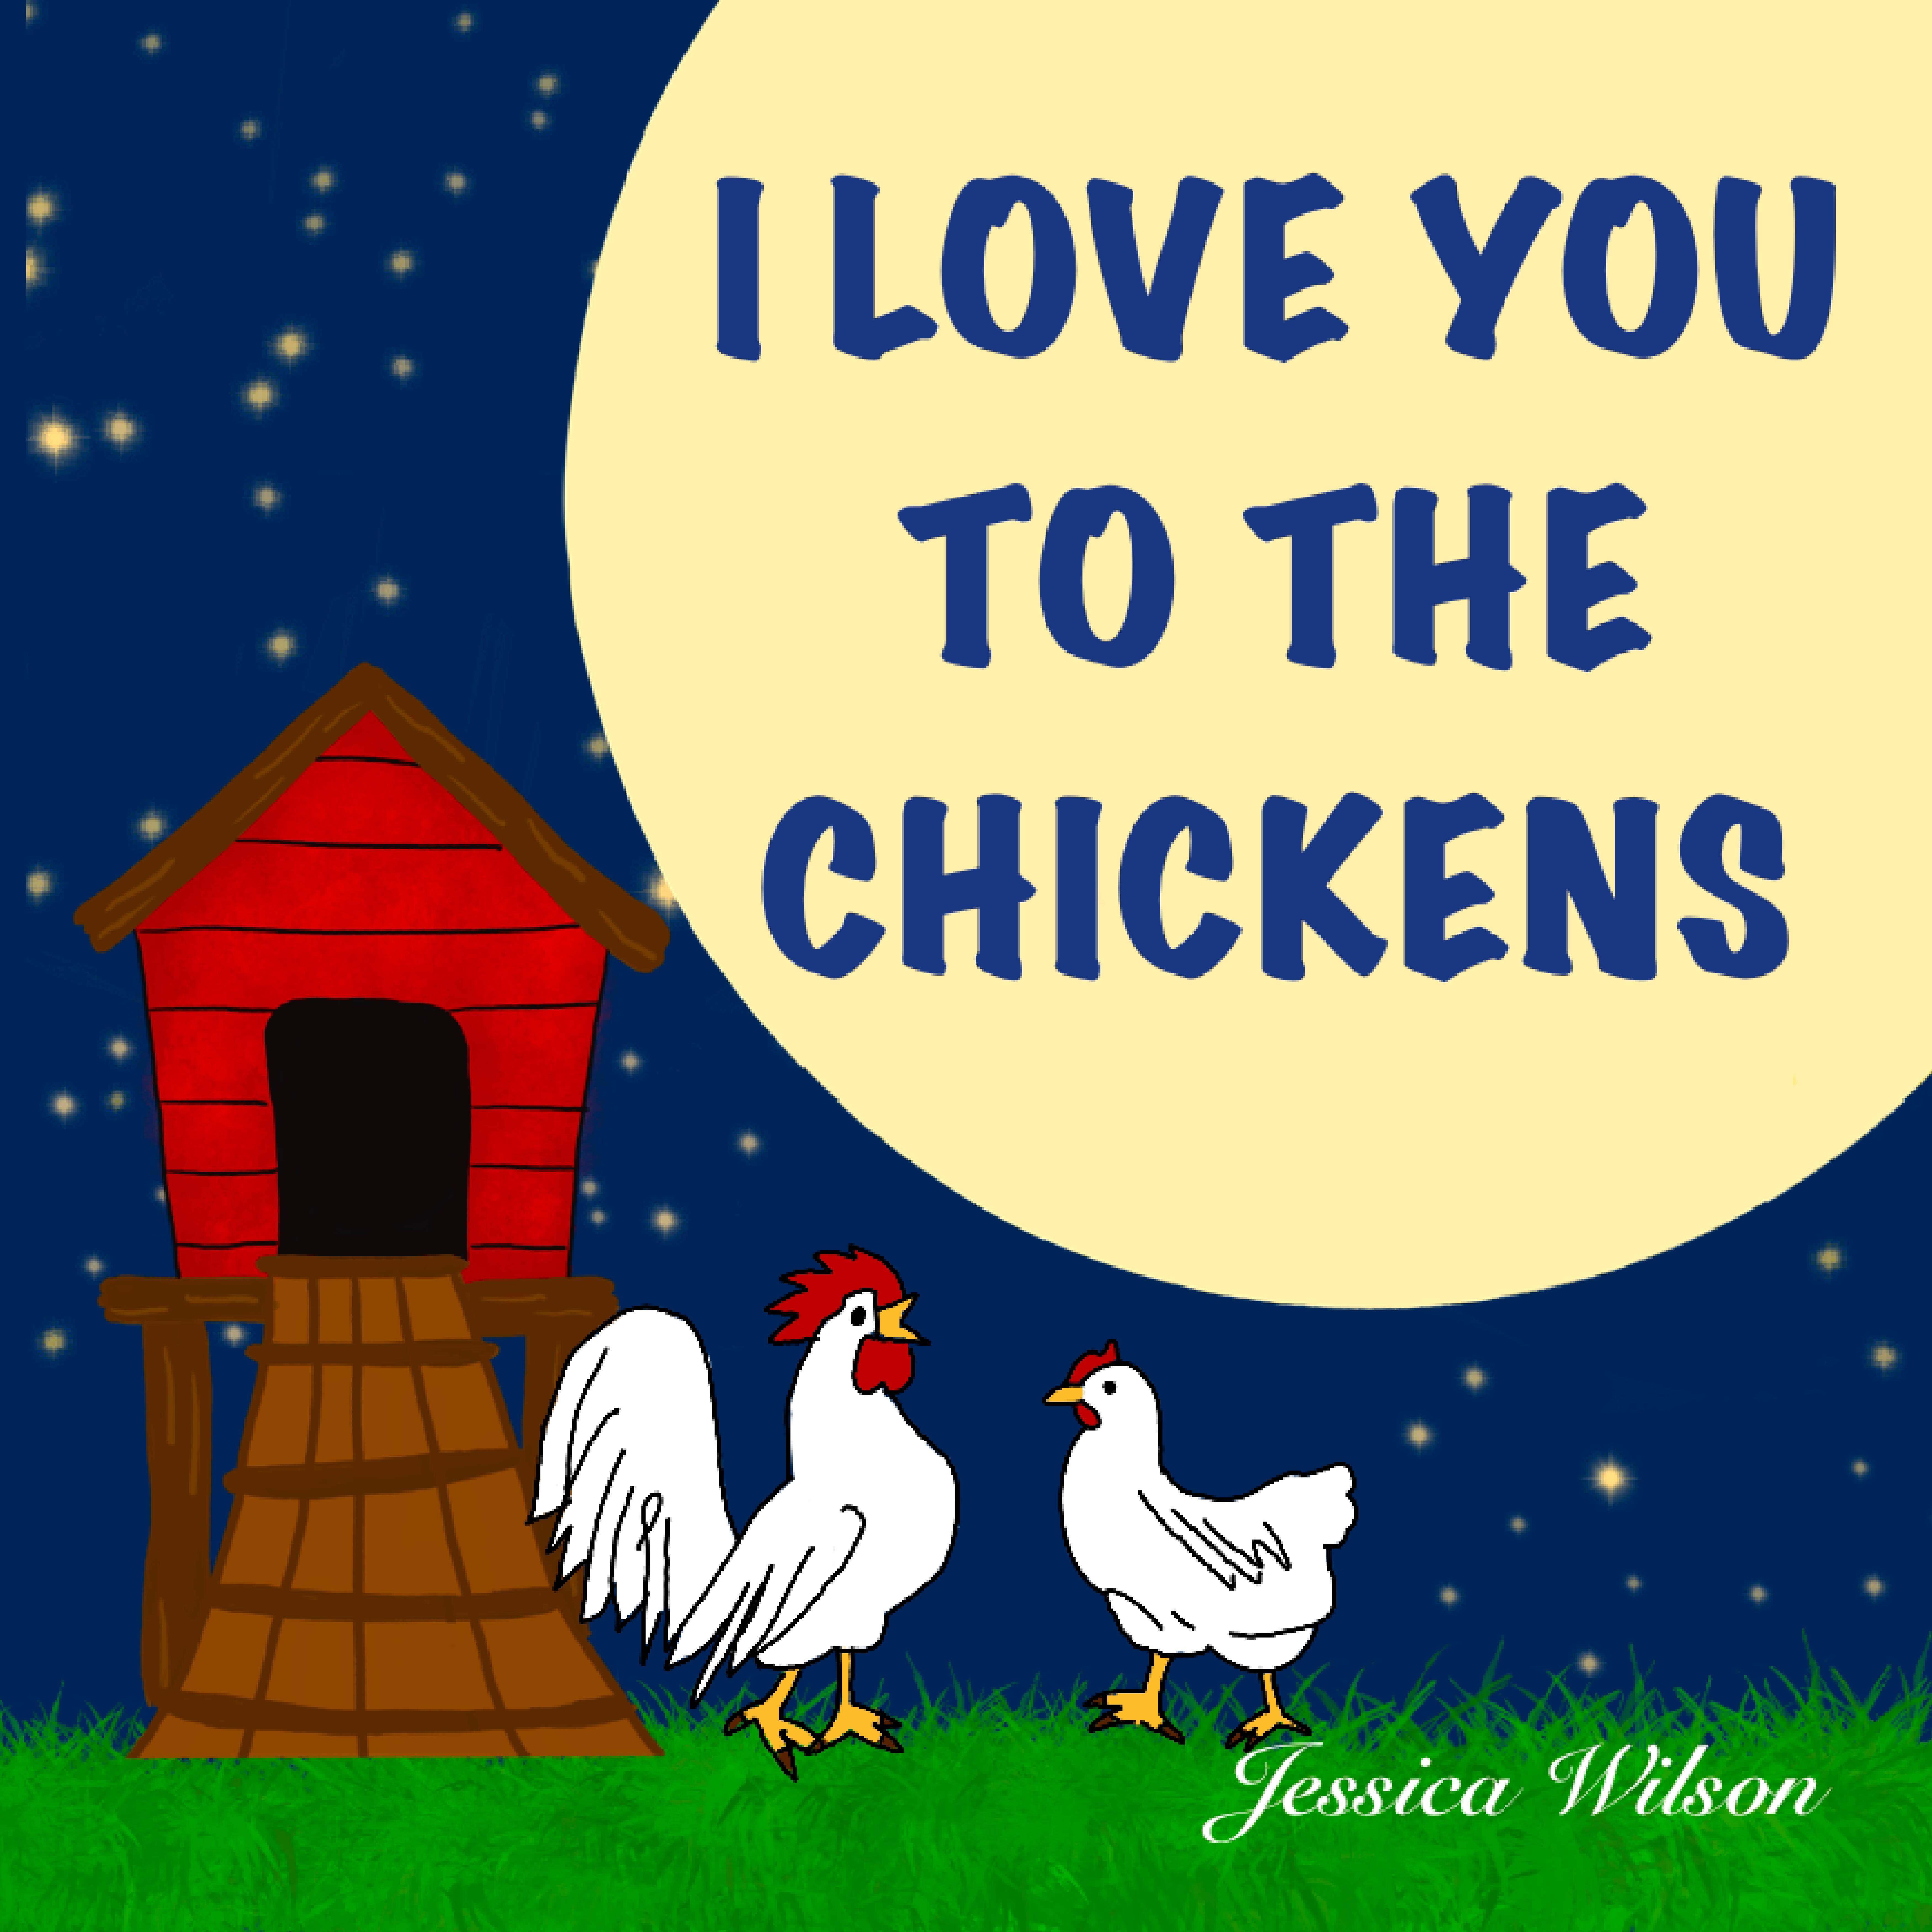 I Love You To The Chickens